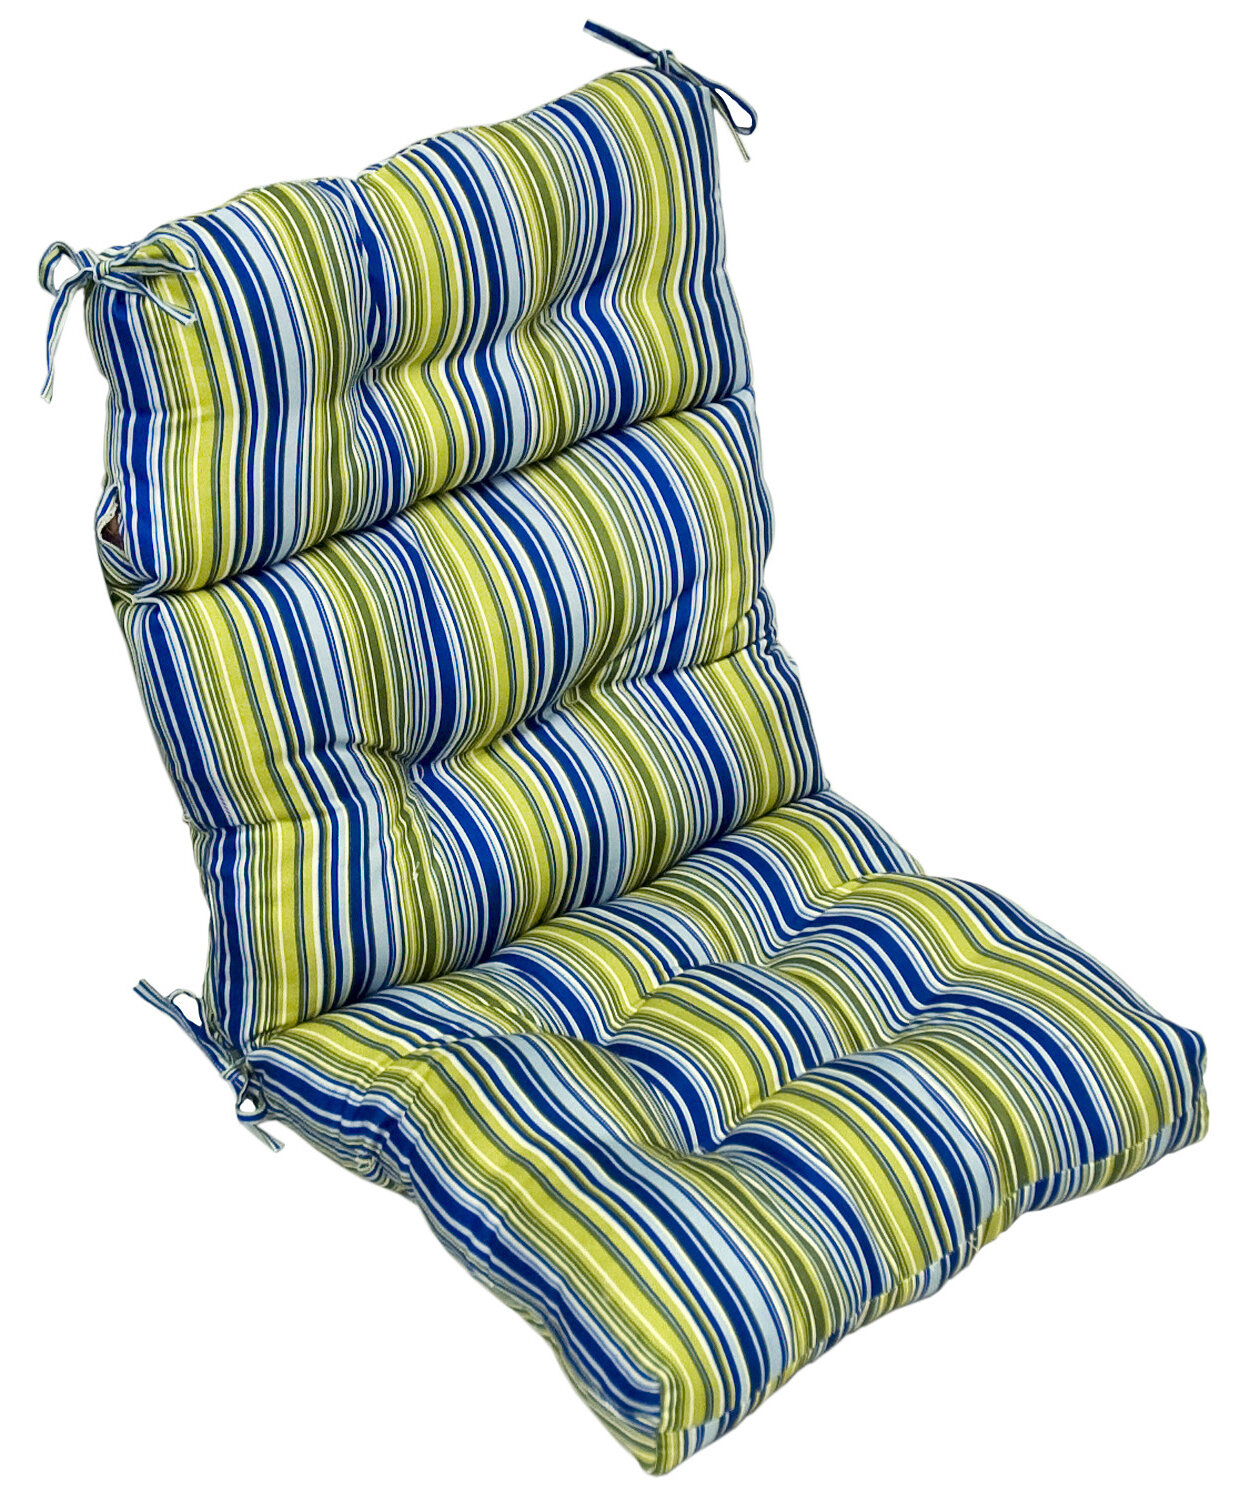 greendale home fashions indoor outdoor high back chair. Black Bedroom Furniture Sets. Home Design Ideas